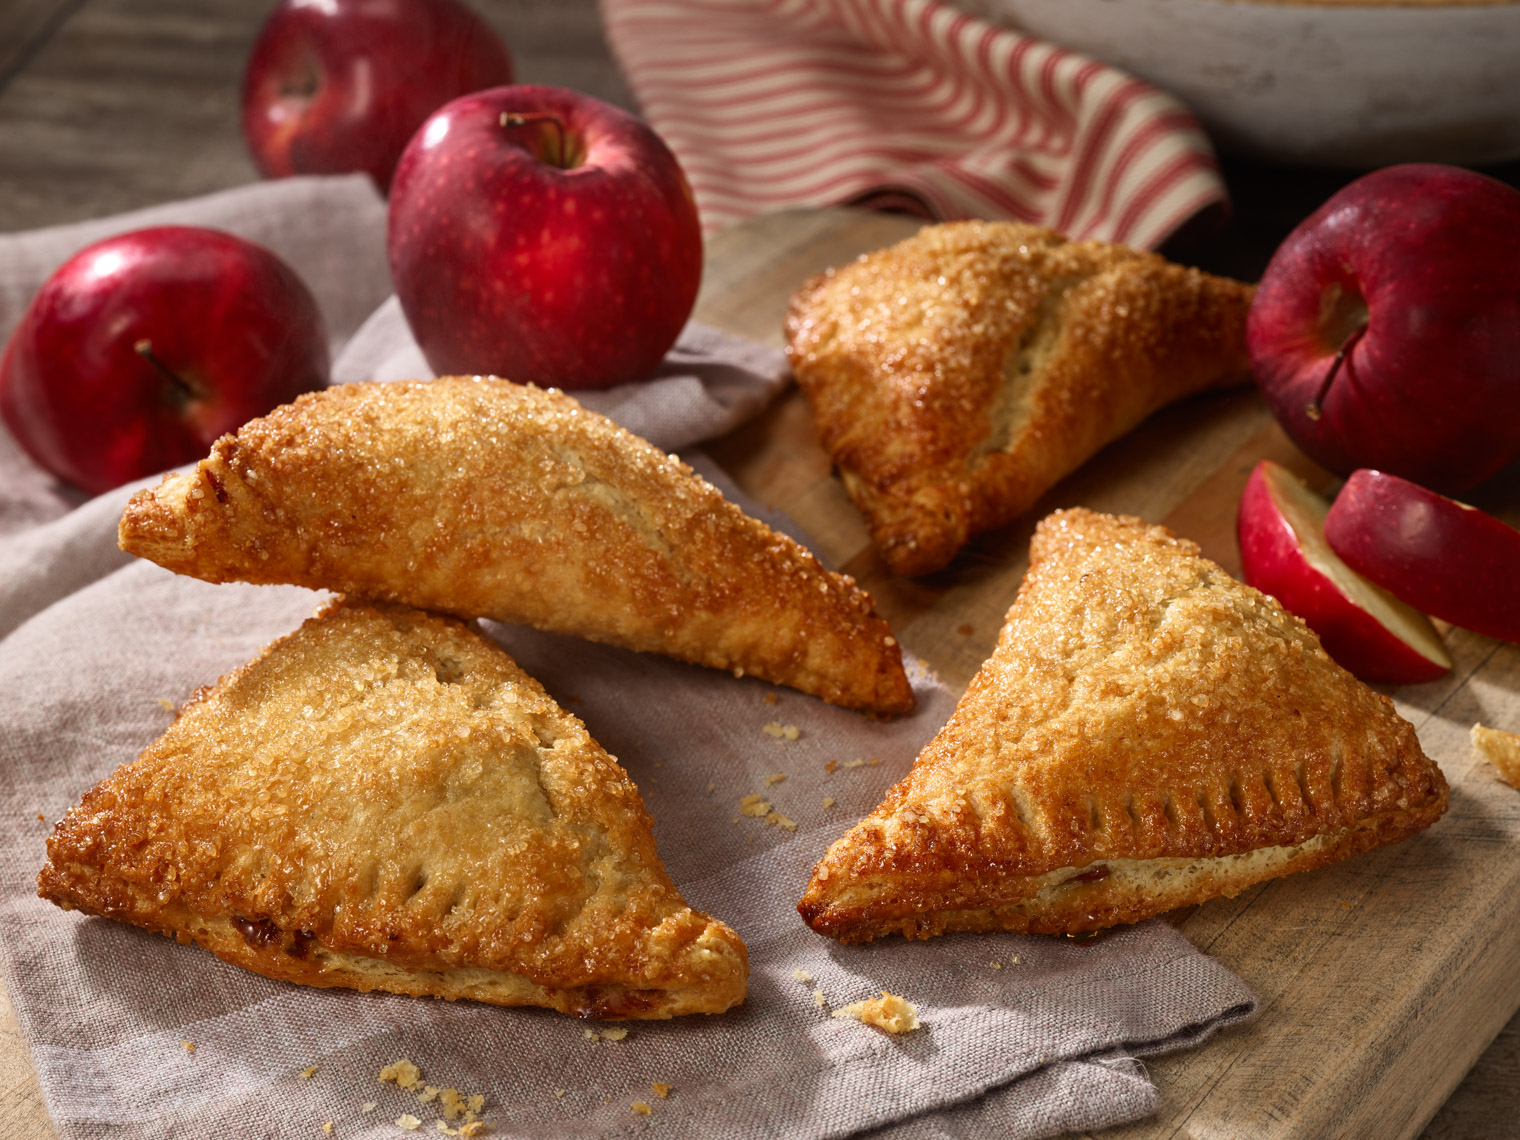 AppleTurnovers